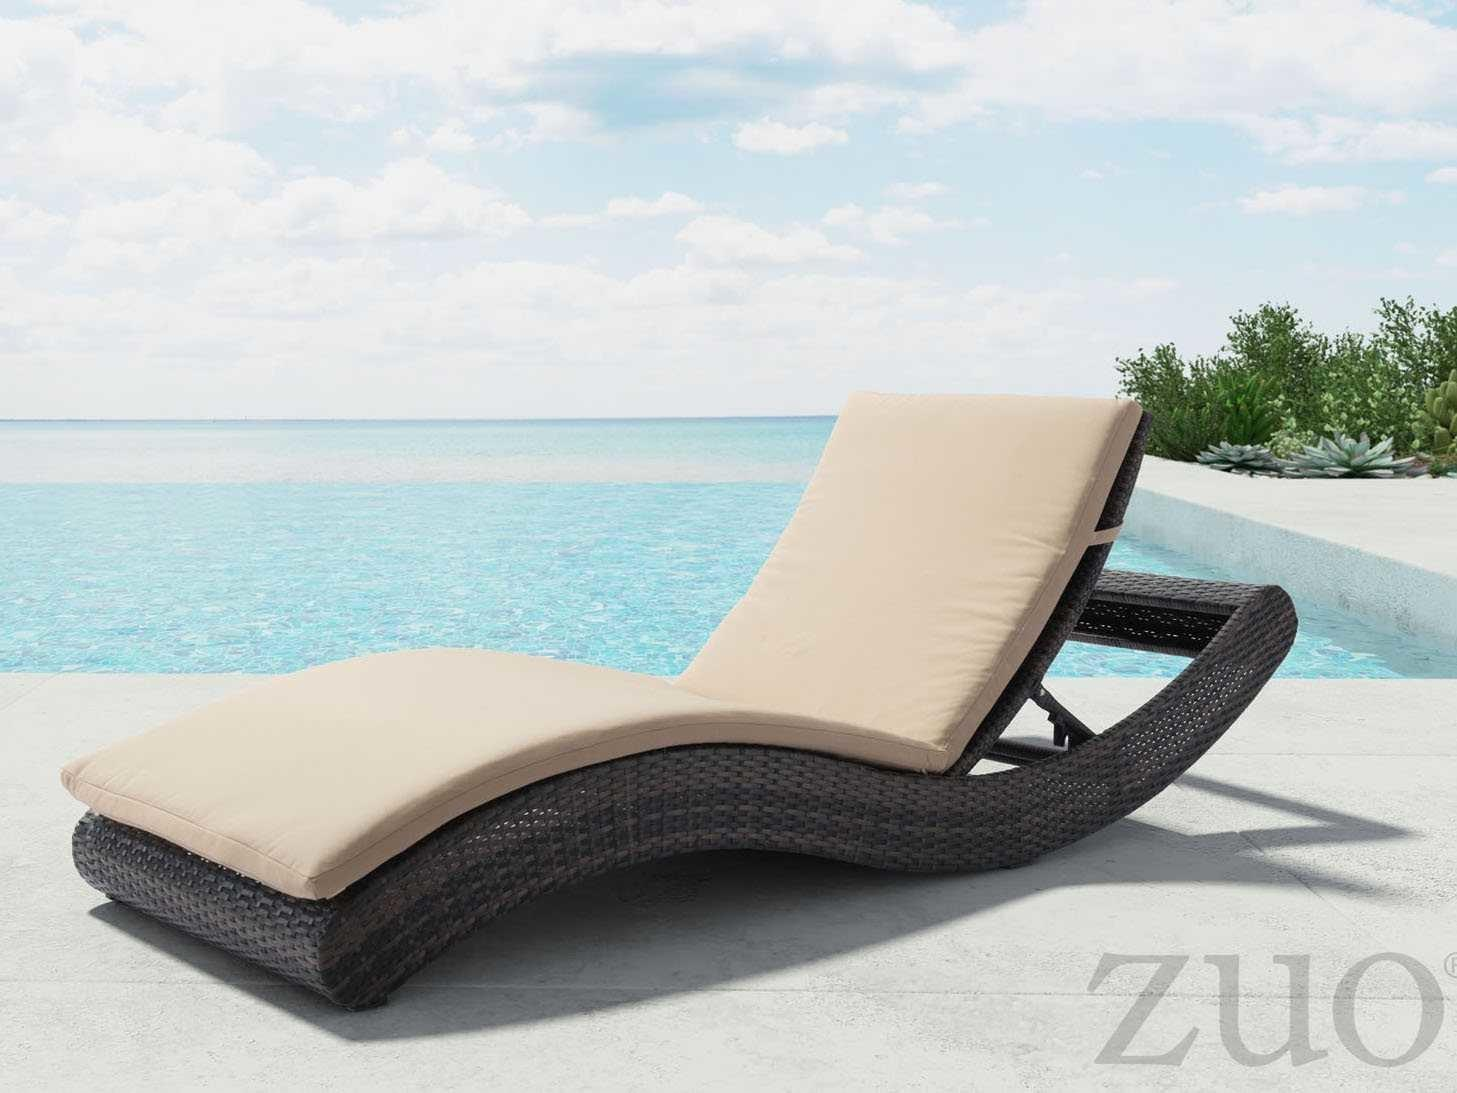 Zuo Outdoor Pamelon Beach Aluminum Wicker Chaise